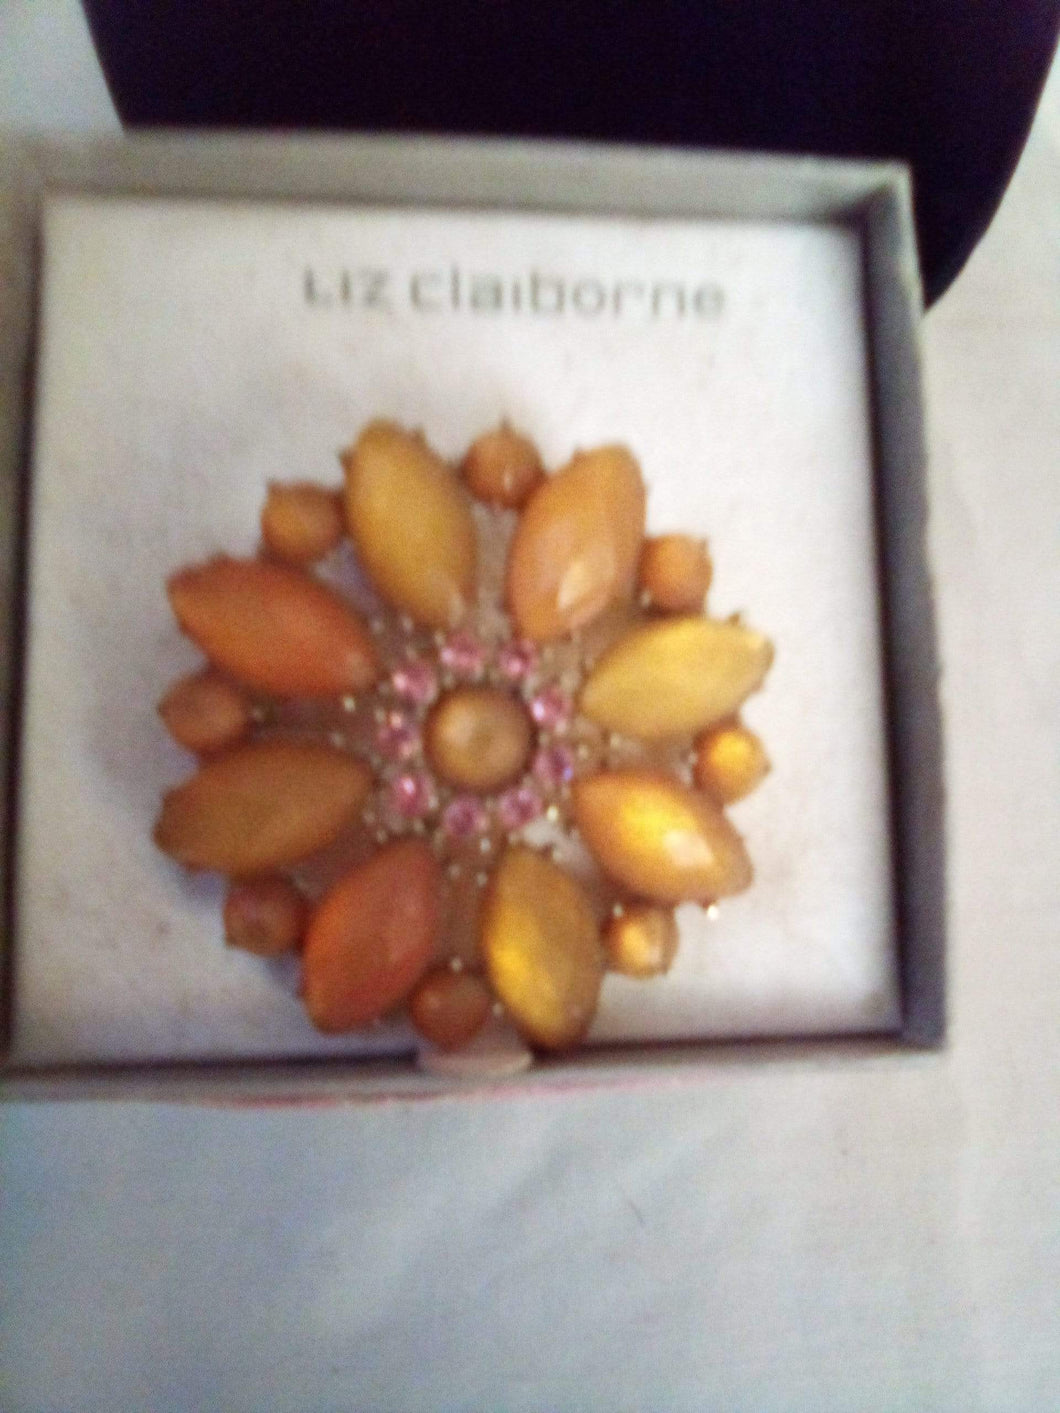 A Liz Claiborne broach new in box. - B&P'sringsnthings